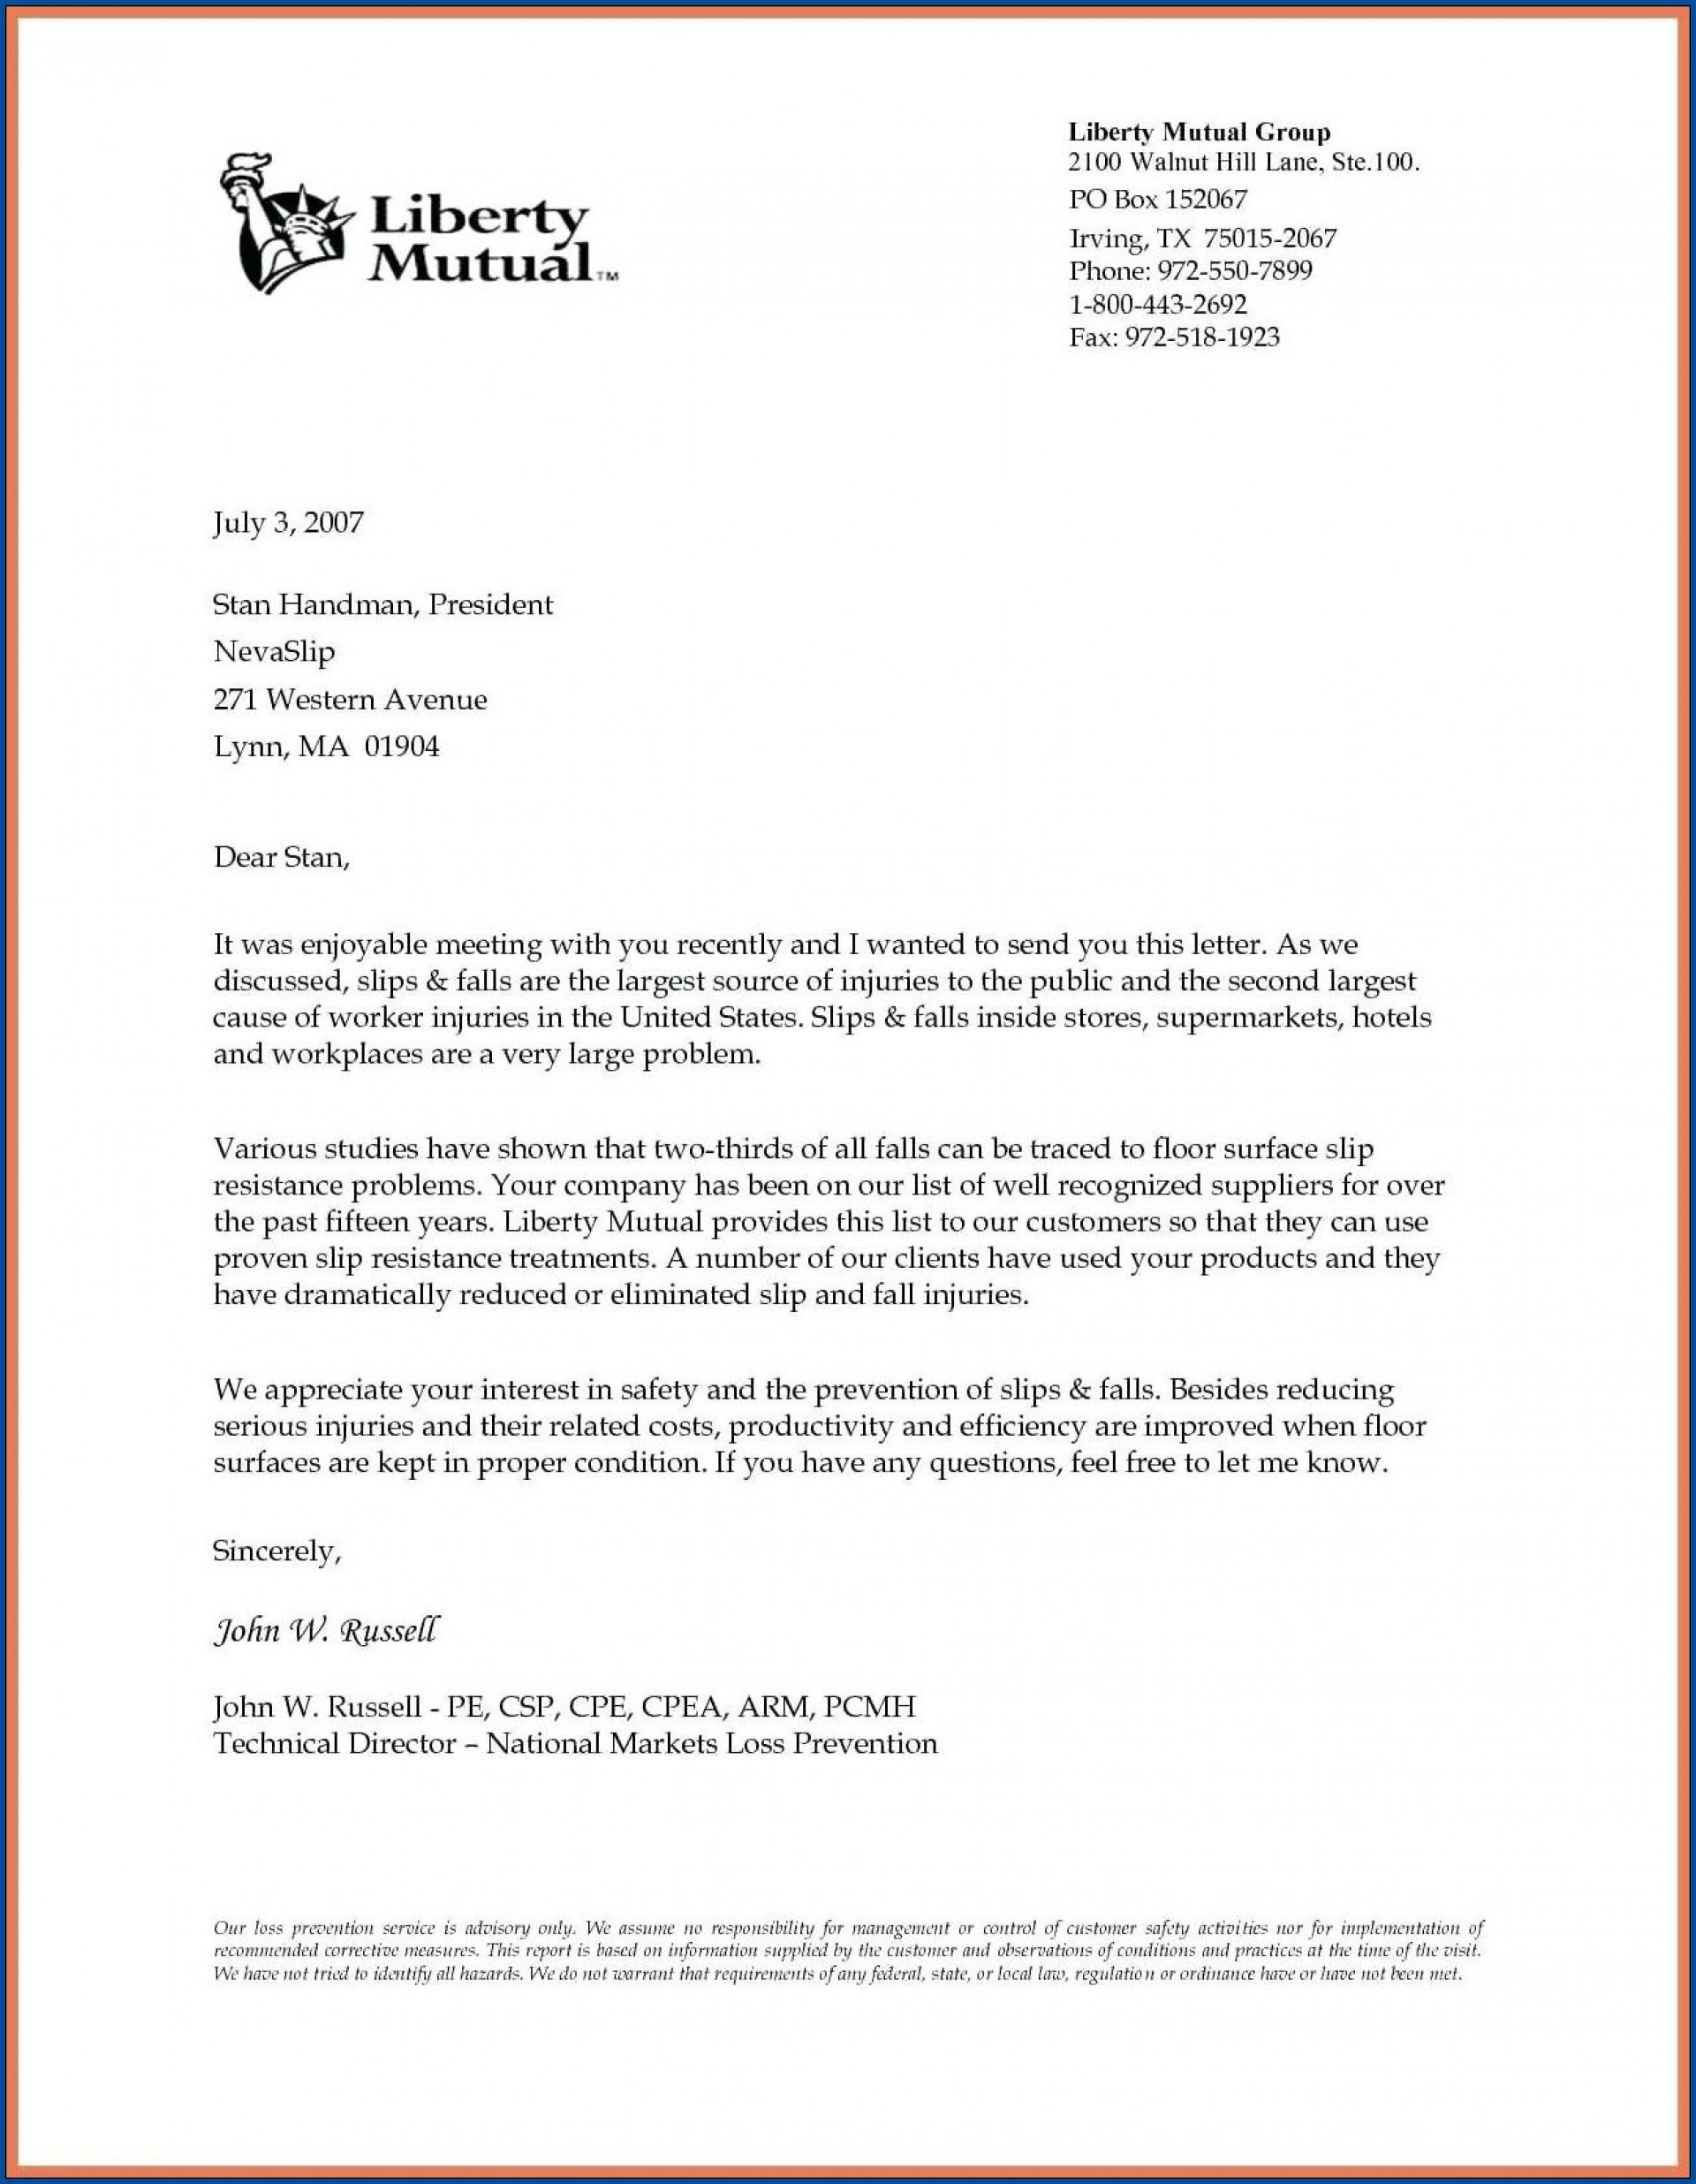 Microsoft Word Business Letter Template from www.addictionary.org